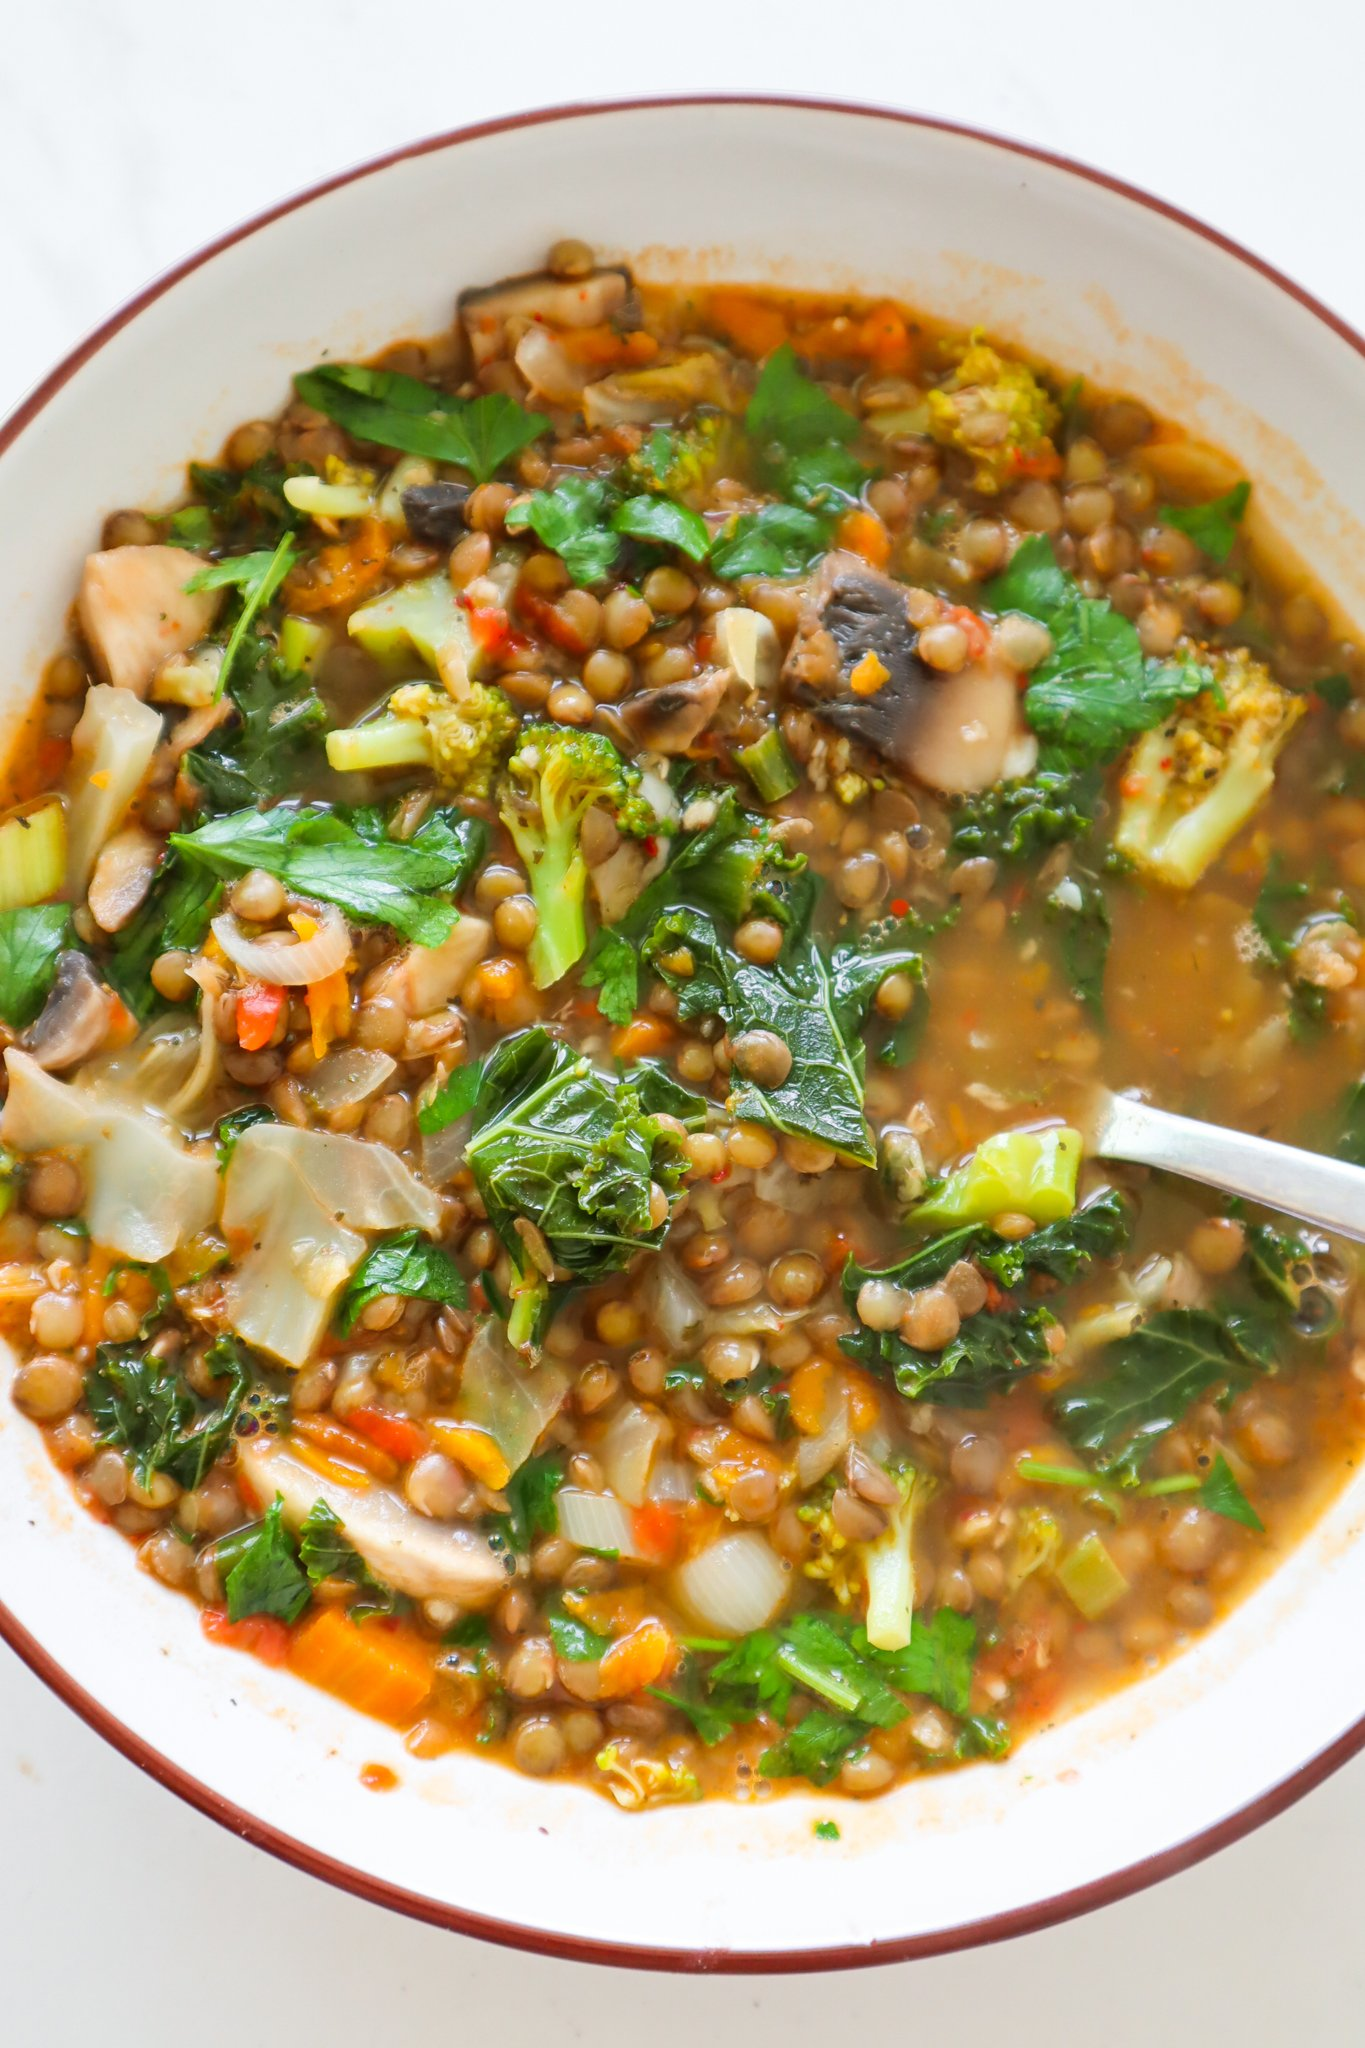 a bowl of hearty vegetable soup on a rainy day! Try this healthy and easy lentil vegetable soup recipe made with dried lentils, simple vegetables, herbs and spices, it is such a tasty lentil recipe and a vegan soup that is ready in no time.